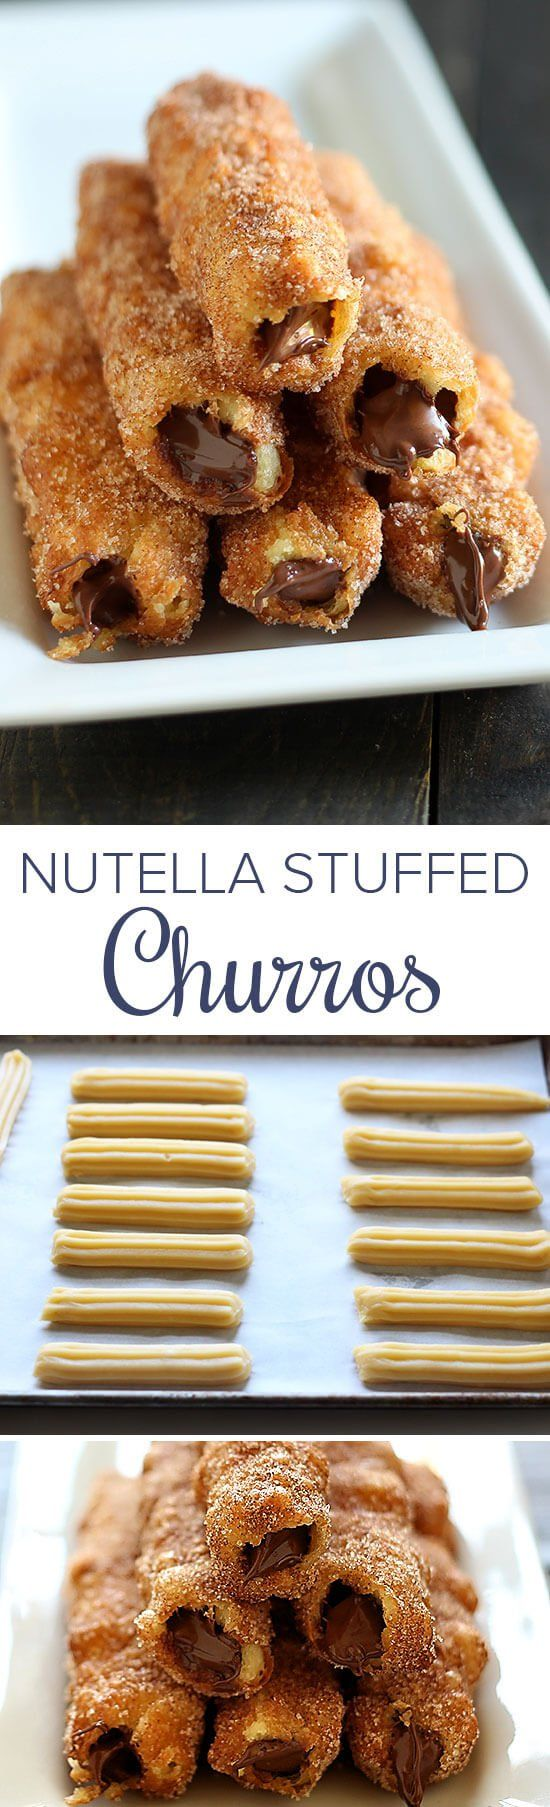 Nutella Stuffed Churros